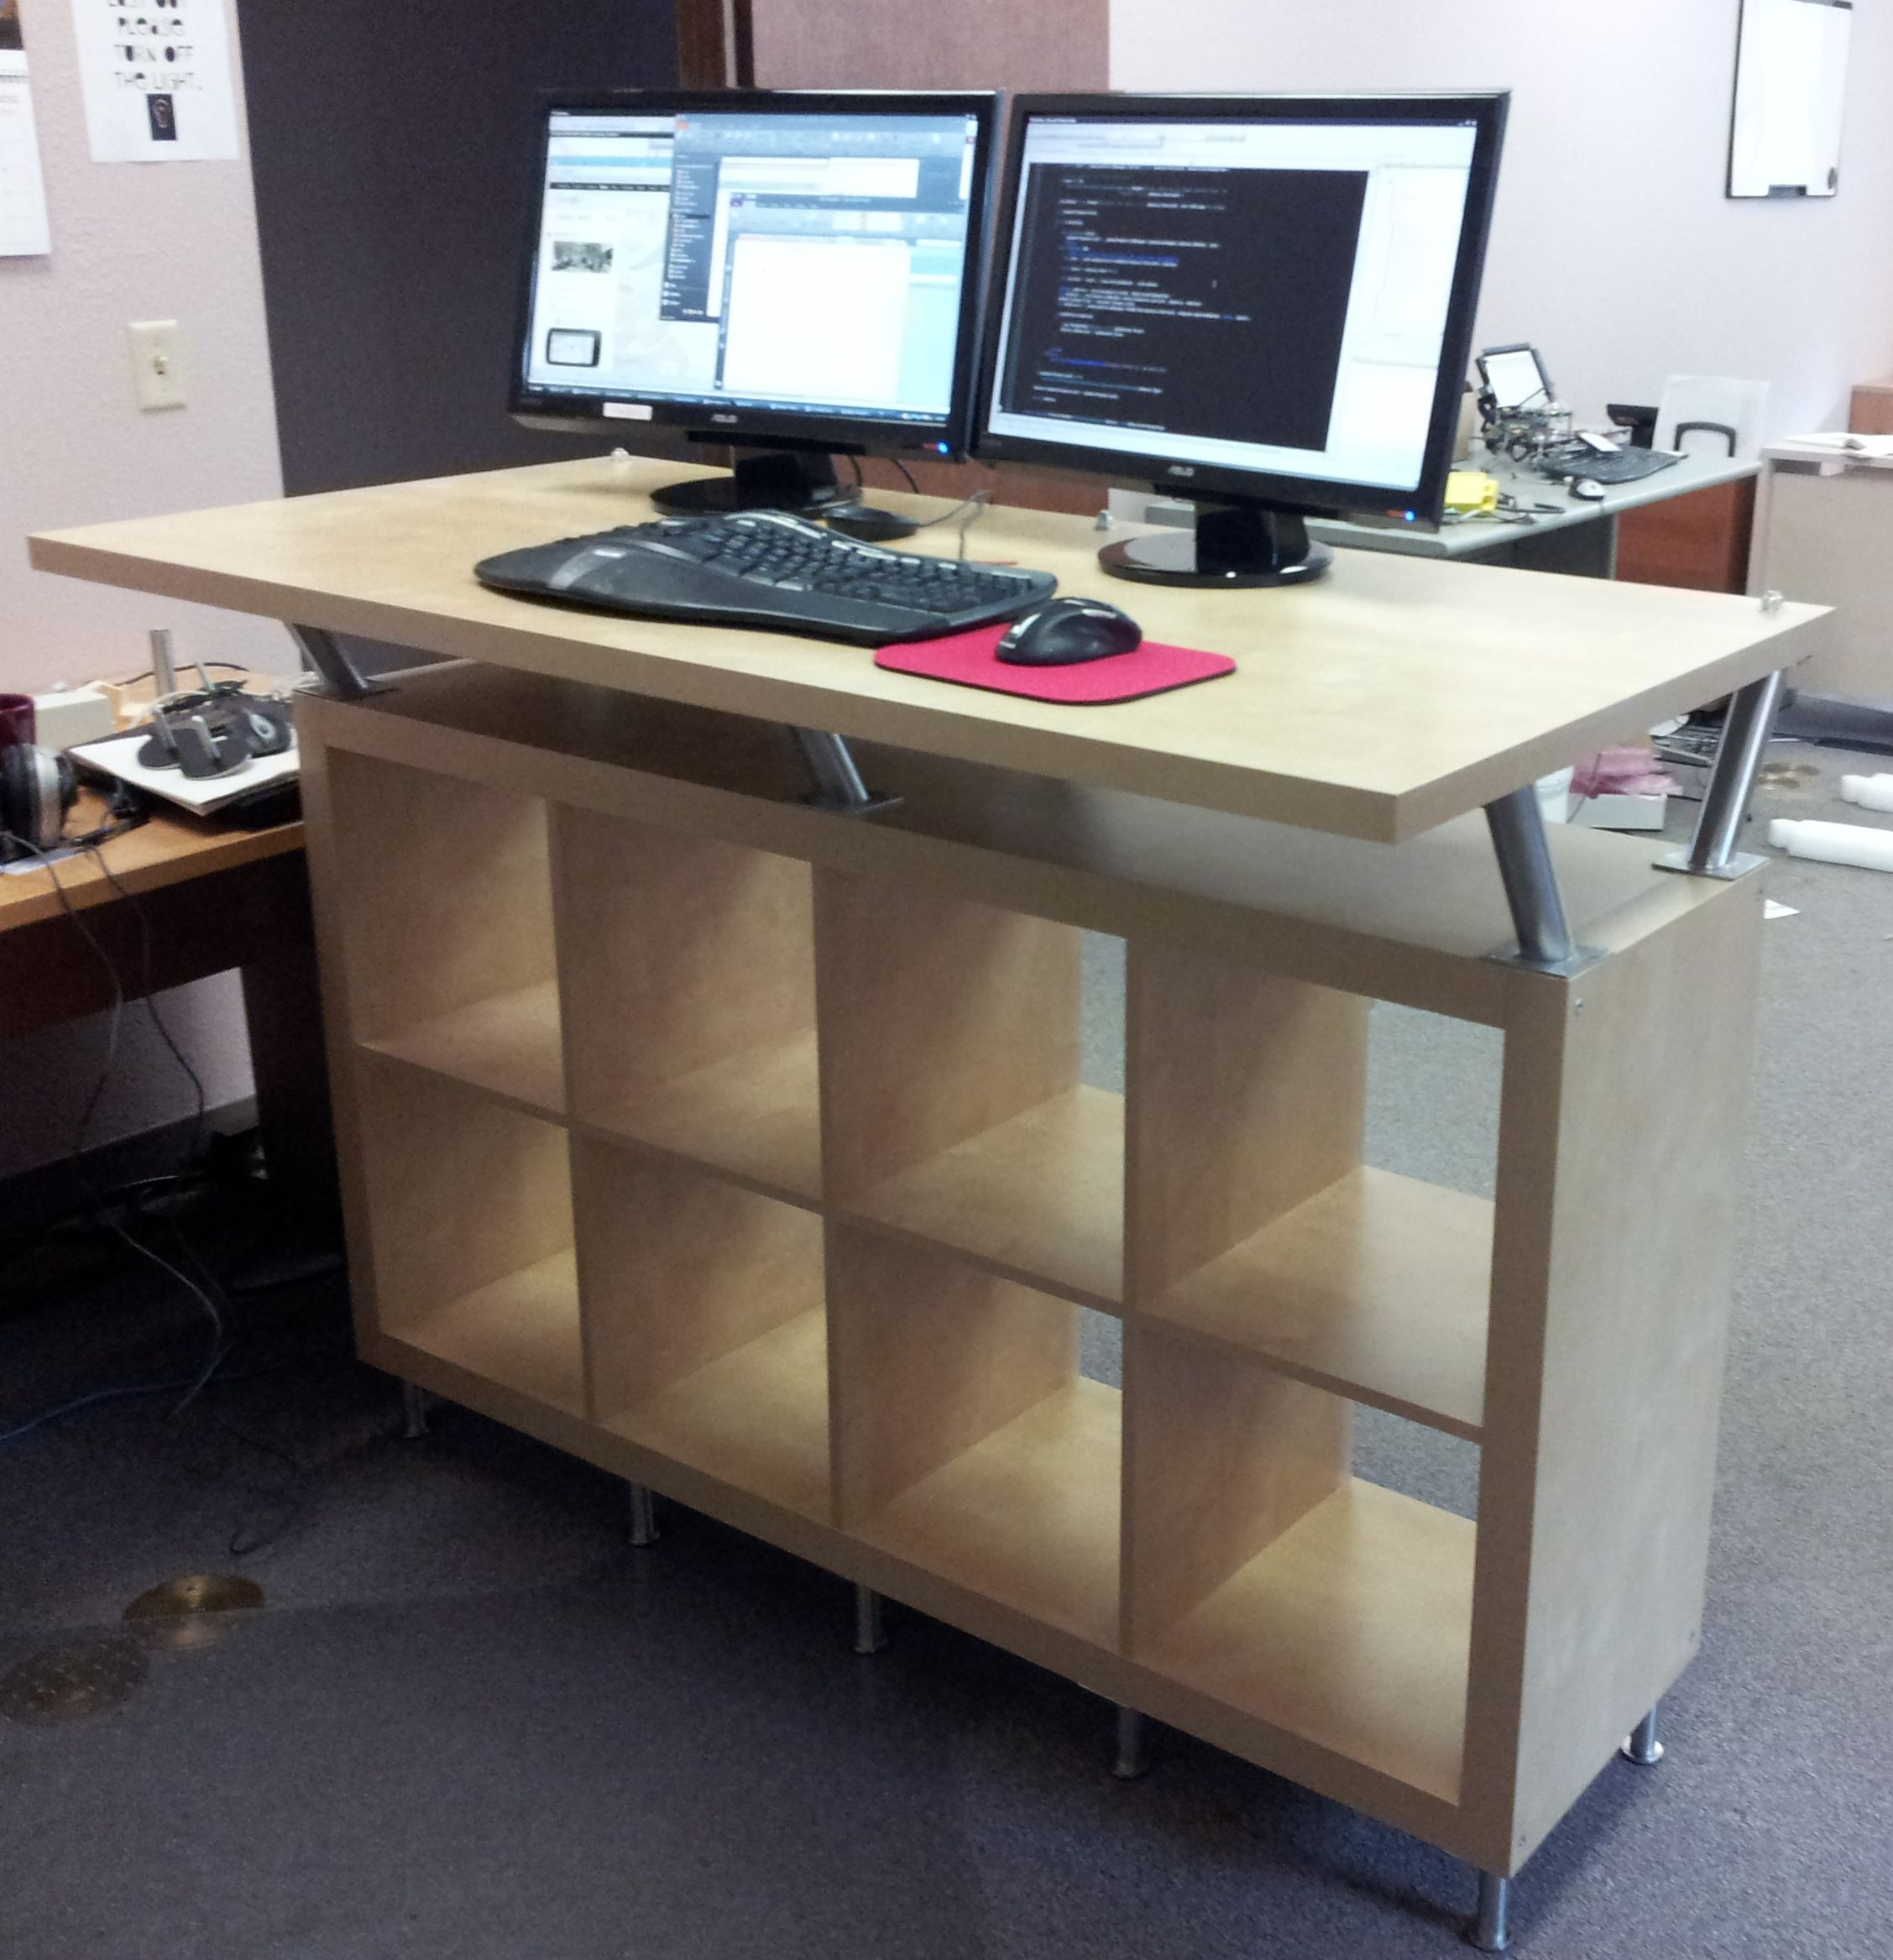 Resemblance Of Working With Ikea Stand Up Desk Face Your Job Powerfully Ikea Standing Desk Diy Standing Desk Office Furniture Standing Desk